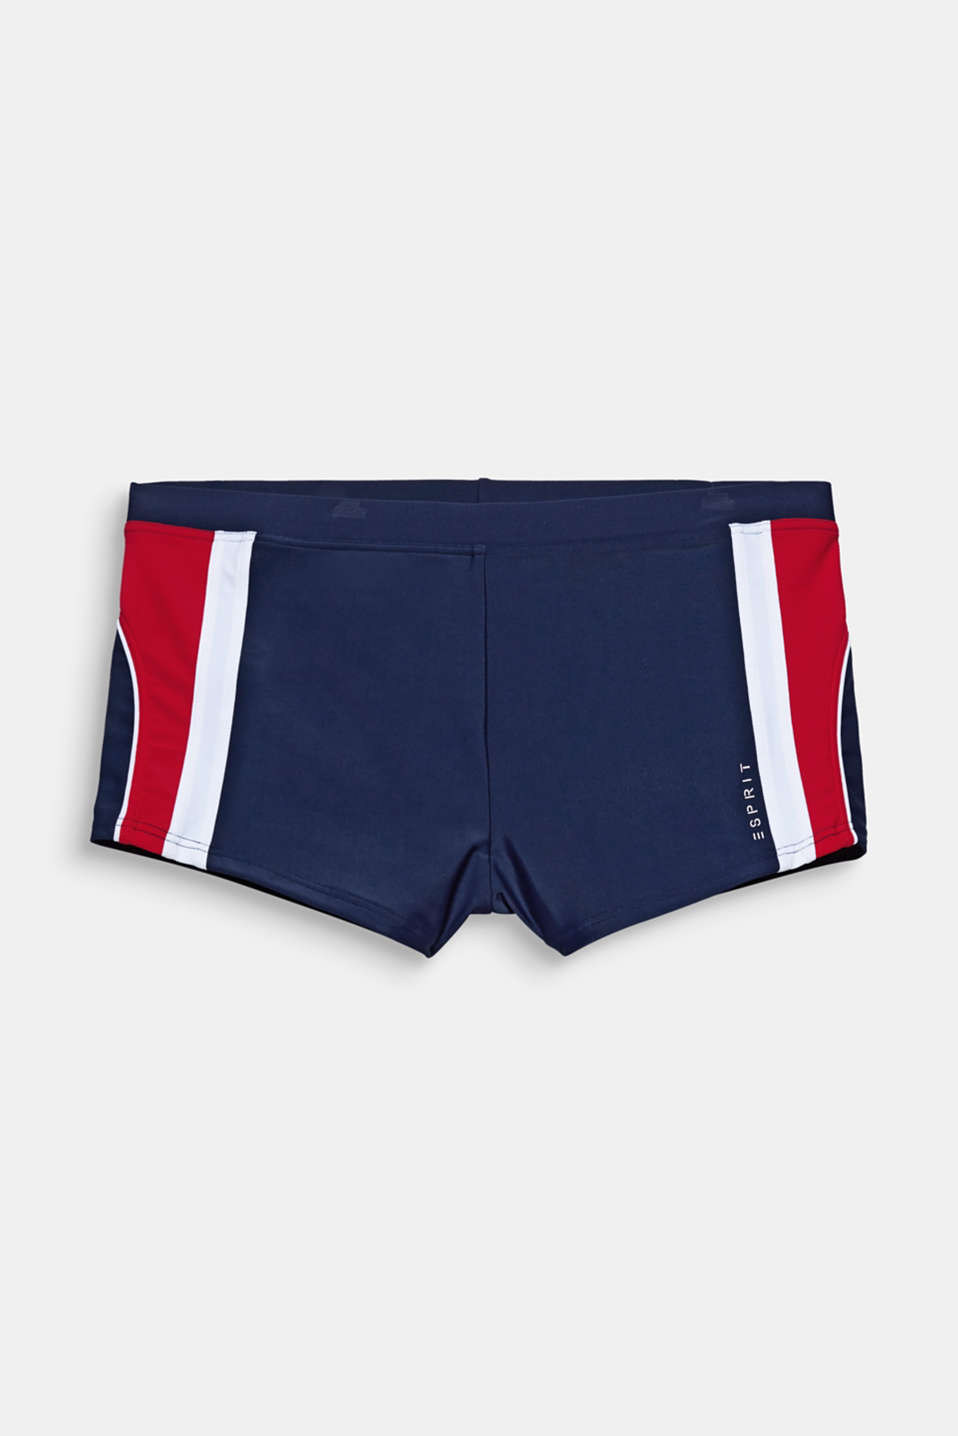 We are into sporty retro looks! Close-fitting swim shorts with colour blocking on the side.